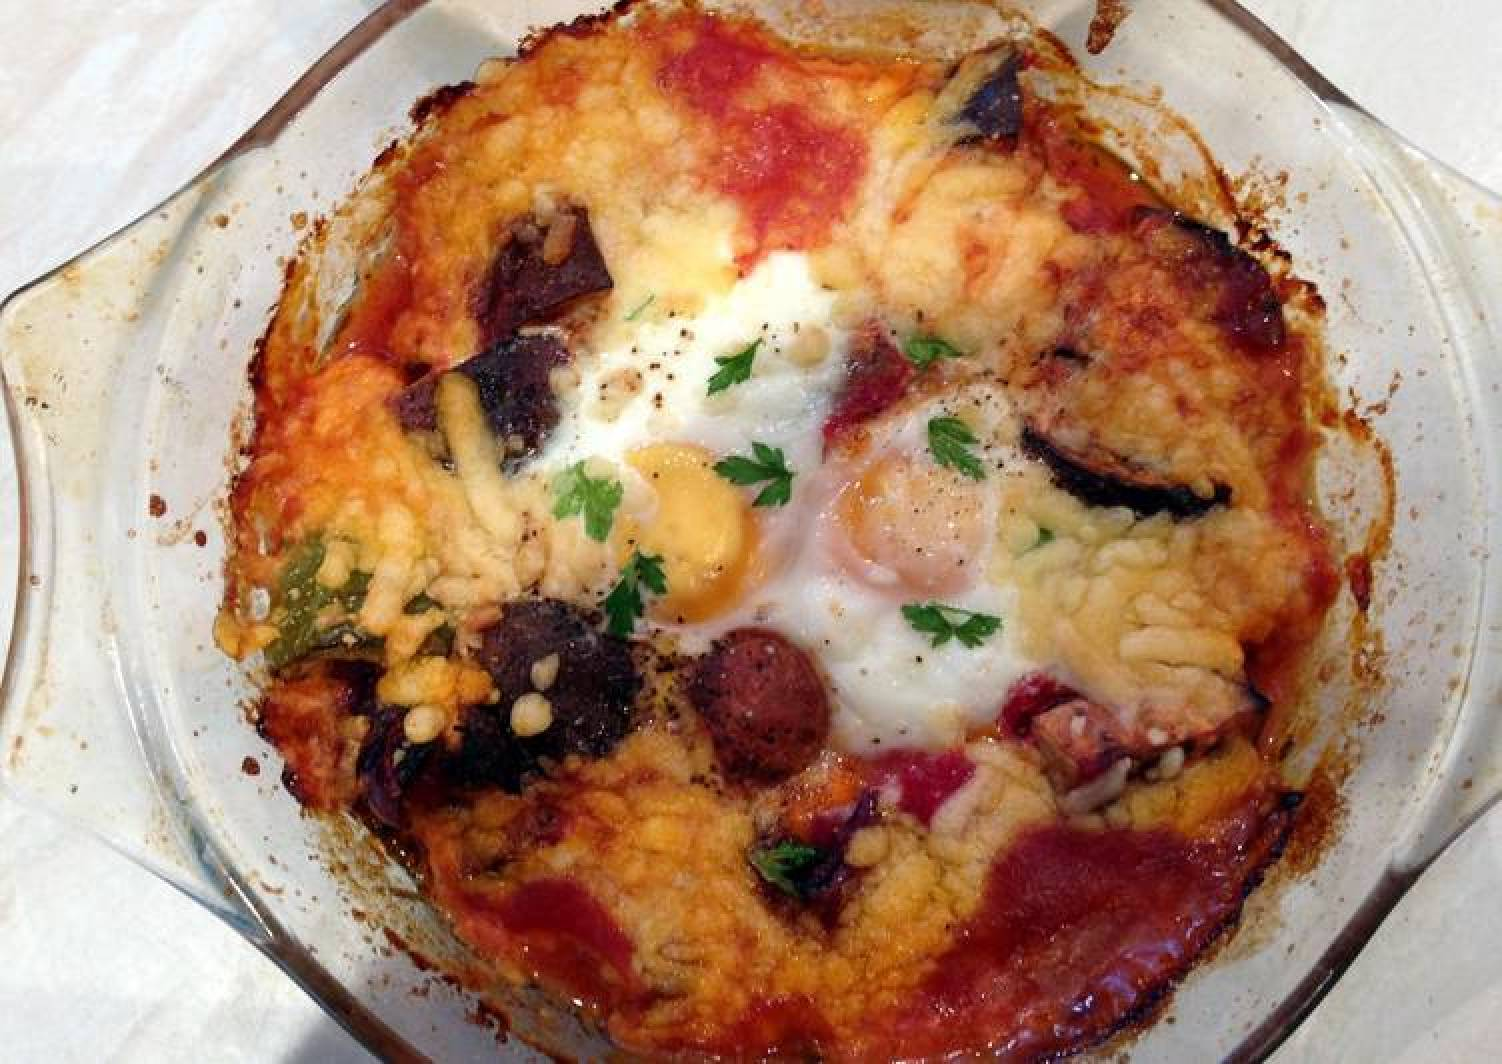 Baked eggs and aubergine in spicy sauce